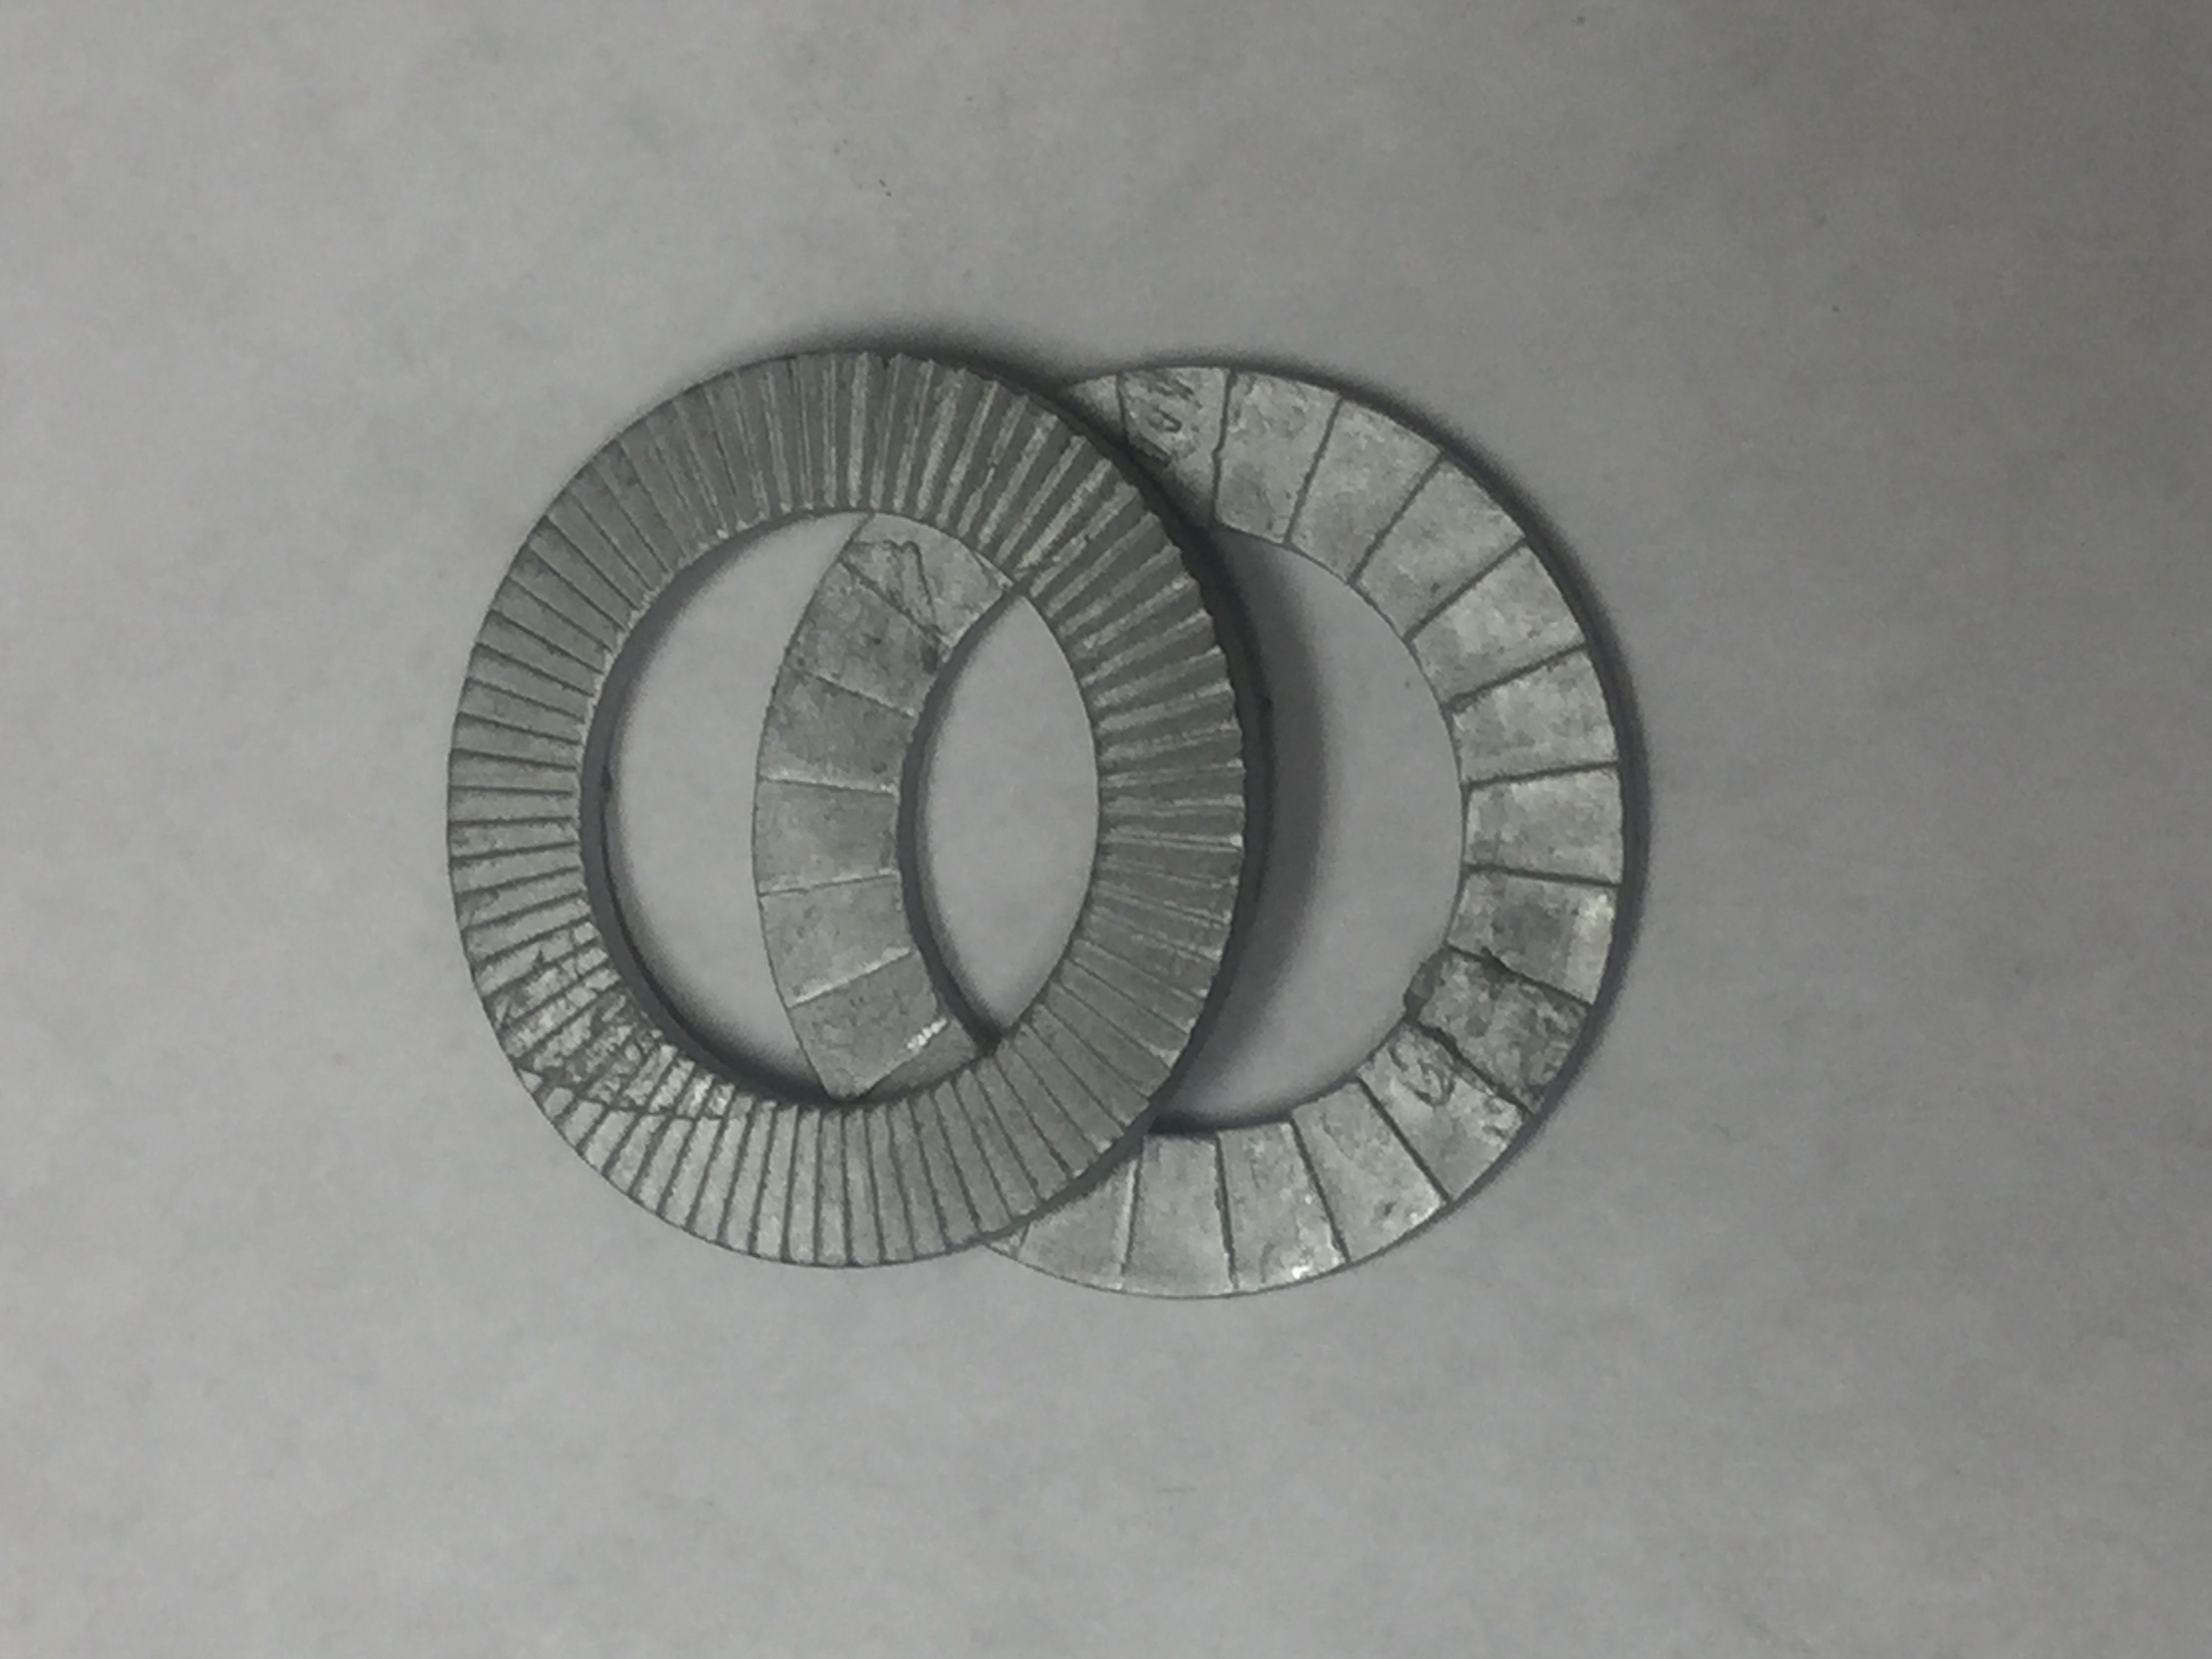 7/16 ZINC PLATED NORD-LOCK WASHER